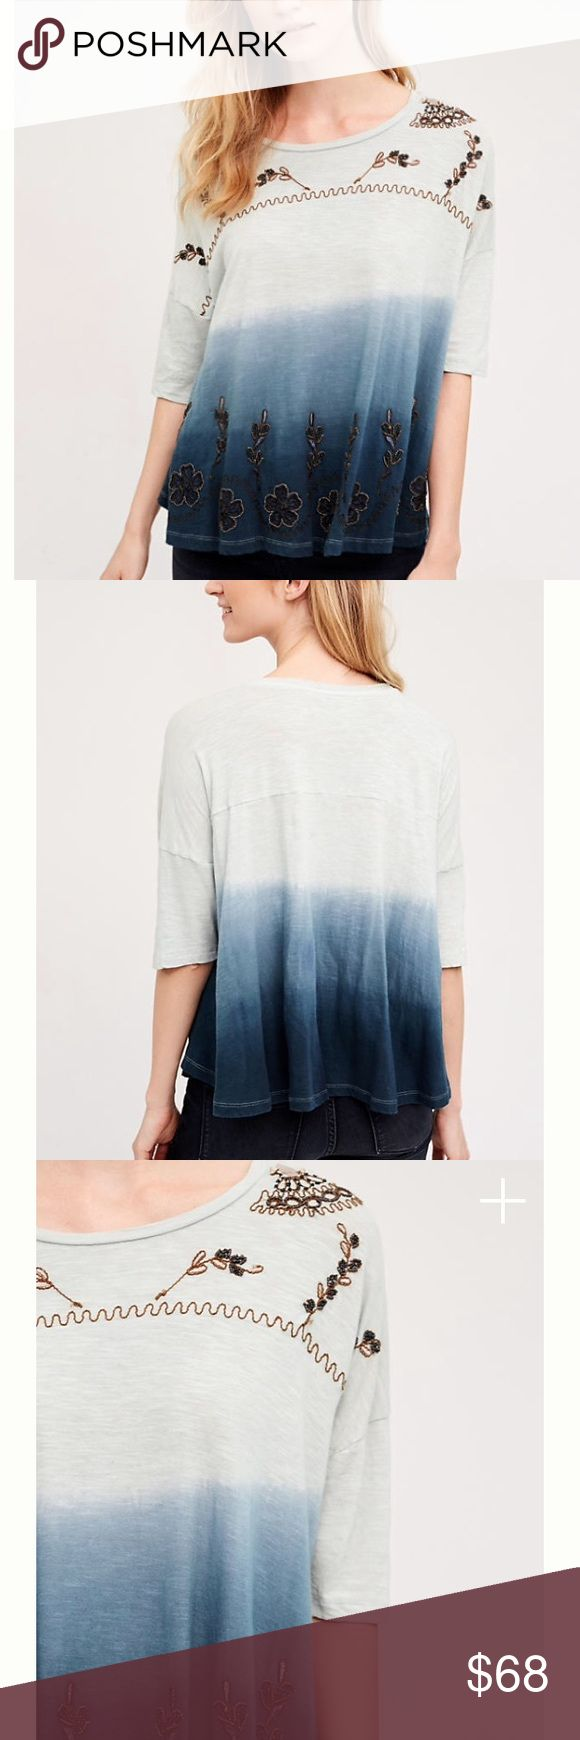 Anthropologie Tulsi Swing Tee Cotton Sequin detail Machine wash Imported Anthropologie Tops Tees - Short Sleeve